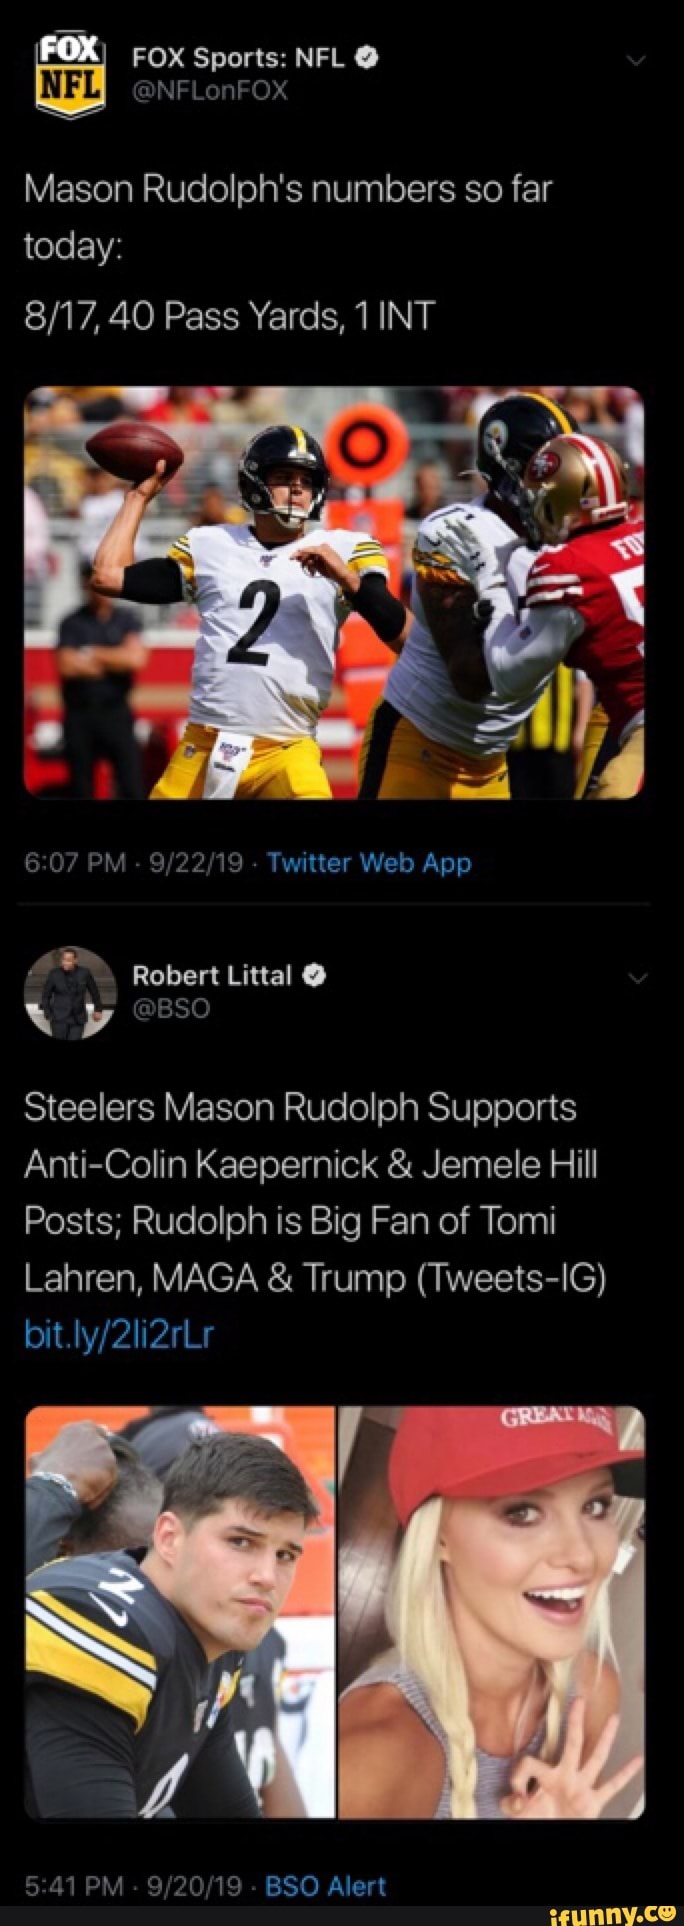 Mason Rudolph S Numbers So Far 8 17 40 Pass Yards 1 Int Steelers Mason Rudolph Supports Anti Colin Kaepernick Jemele Hill Posts Rudolph Is Big Fan Of Tomi Lahren Maga Trump Tweets Ig